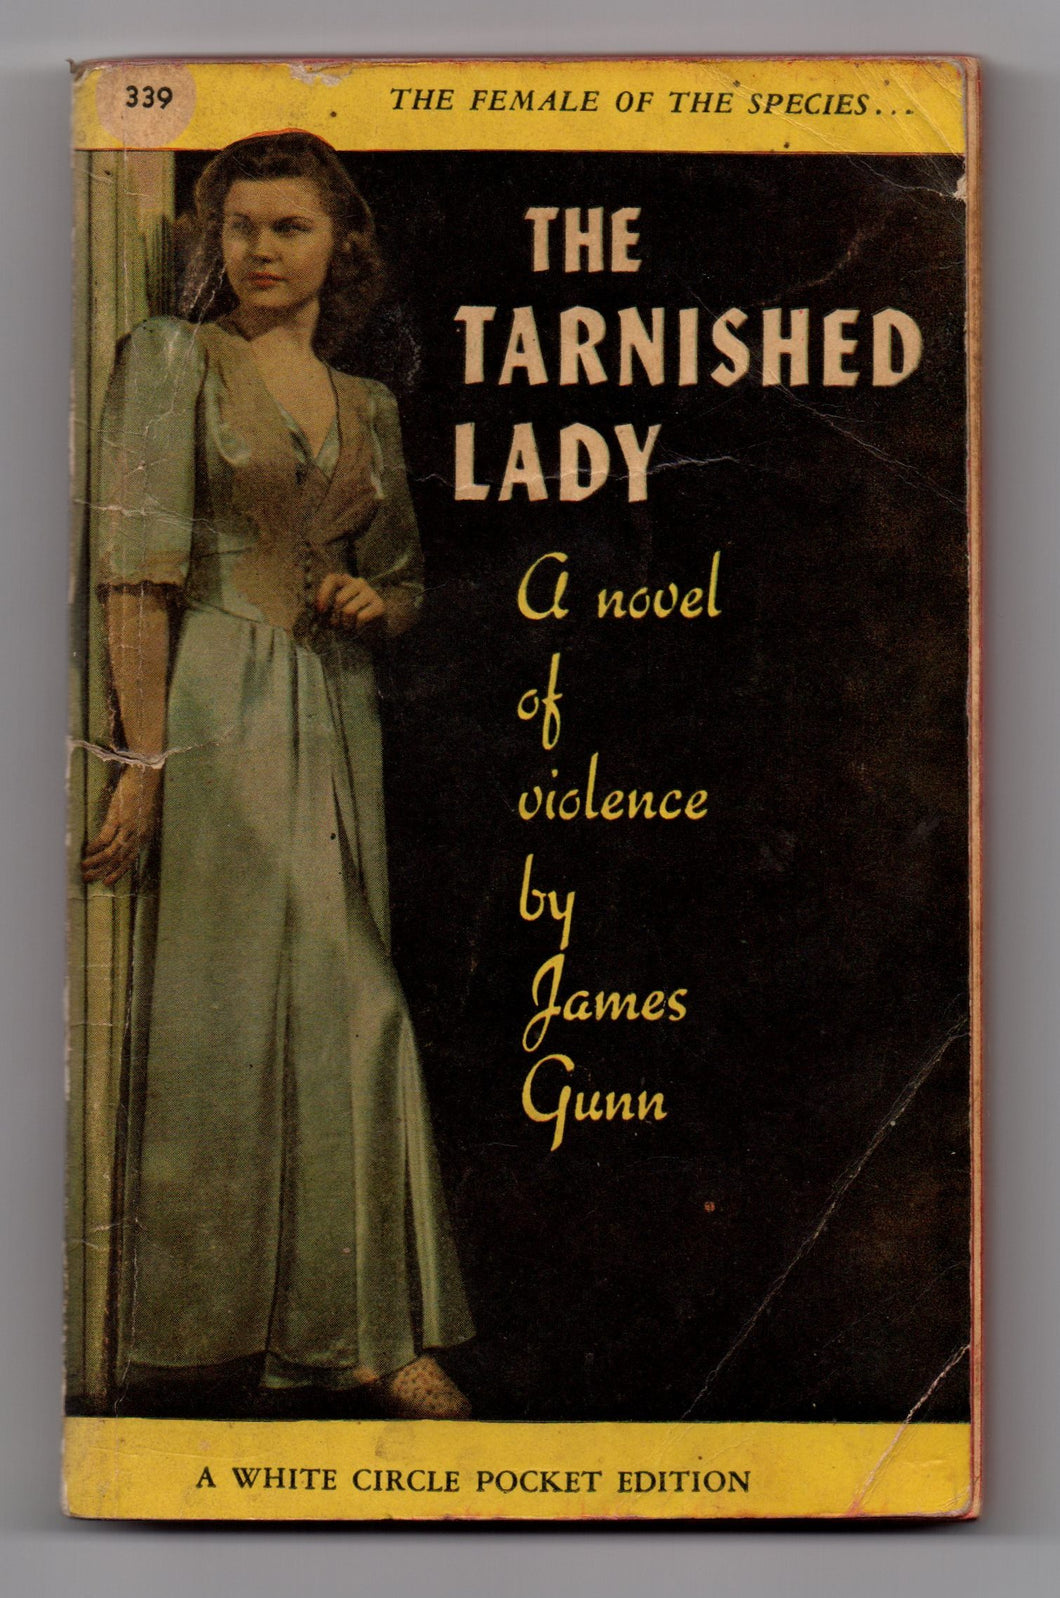 The Tarnished Lady: A novel of violence